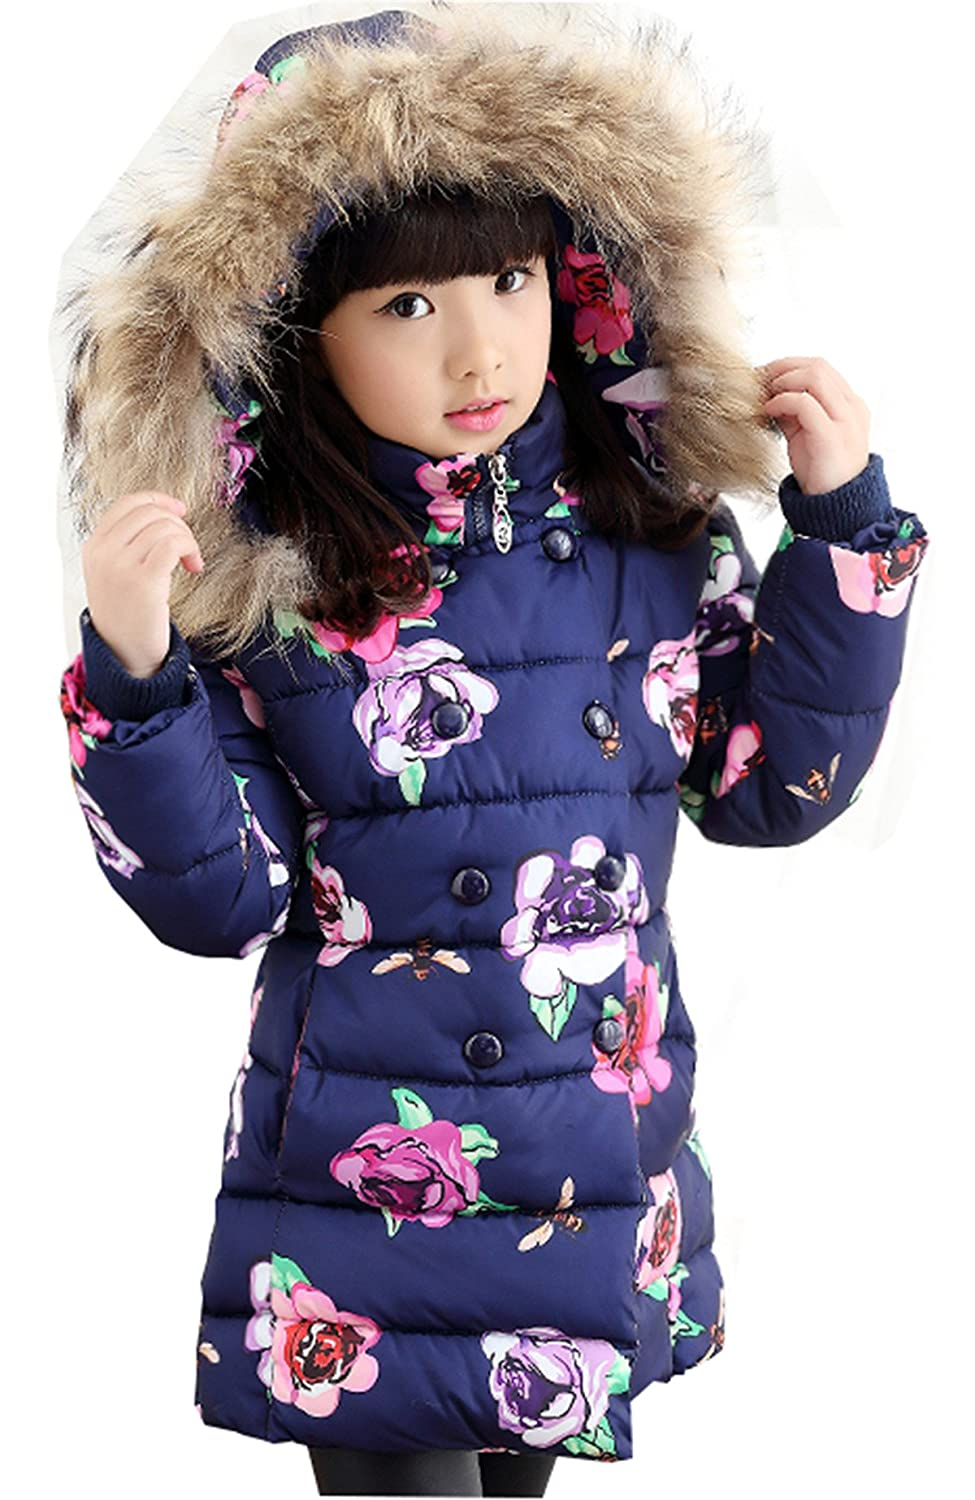 WEONEDREAM Princess Girls Medium-Long Winter Jackets Cotton-Padded & Fur Hood Coats